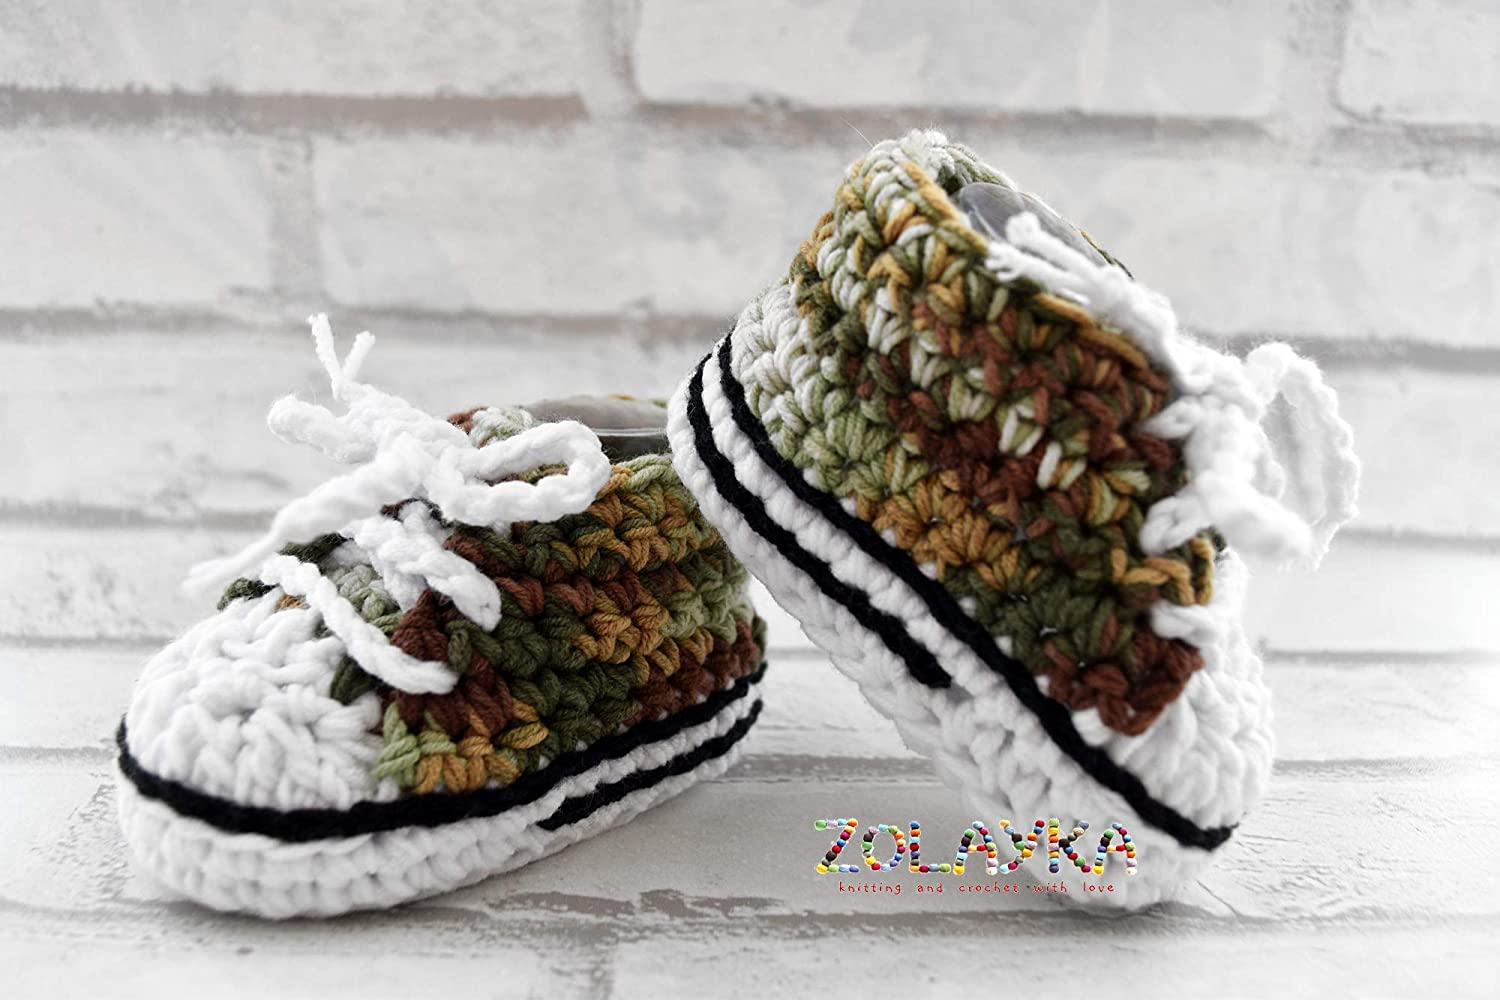 New Handmade Crocheted Girls Boys Unisex Baby Booties Athletic Sneakers 3-6 Months